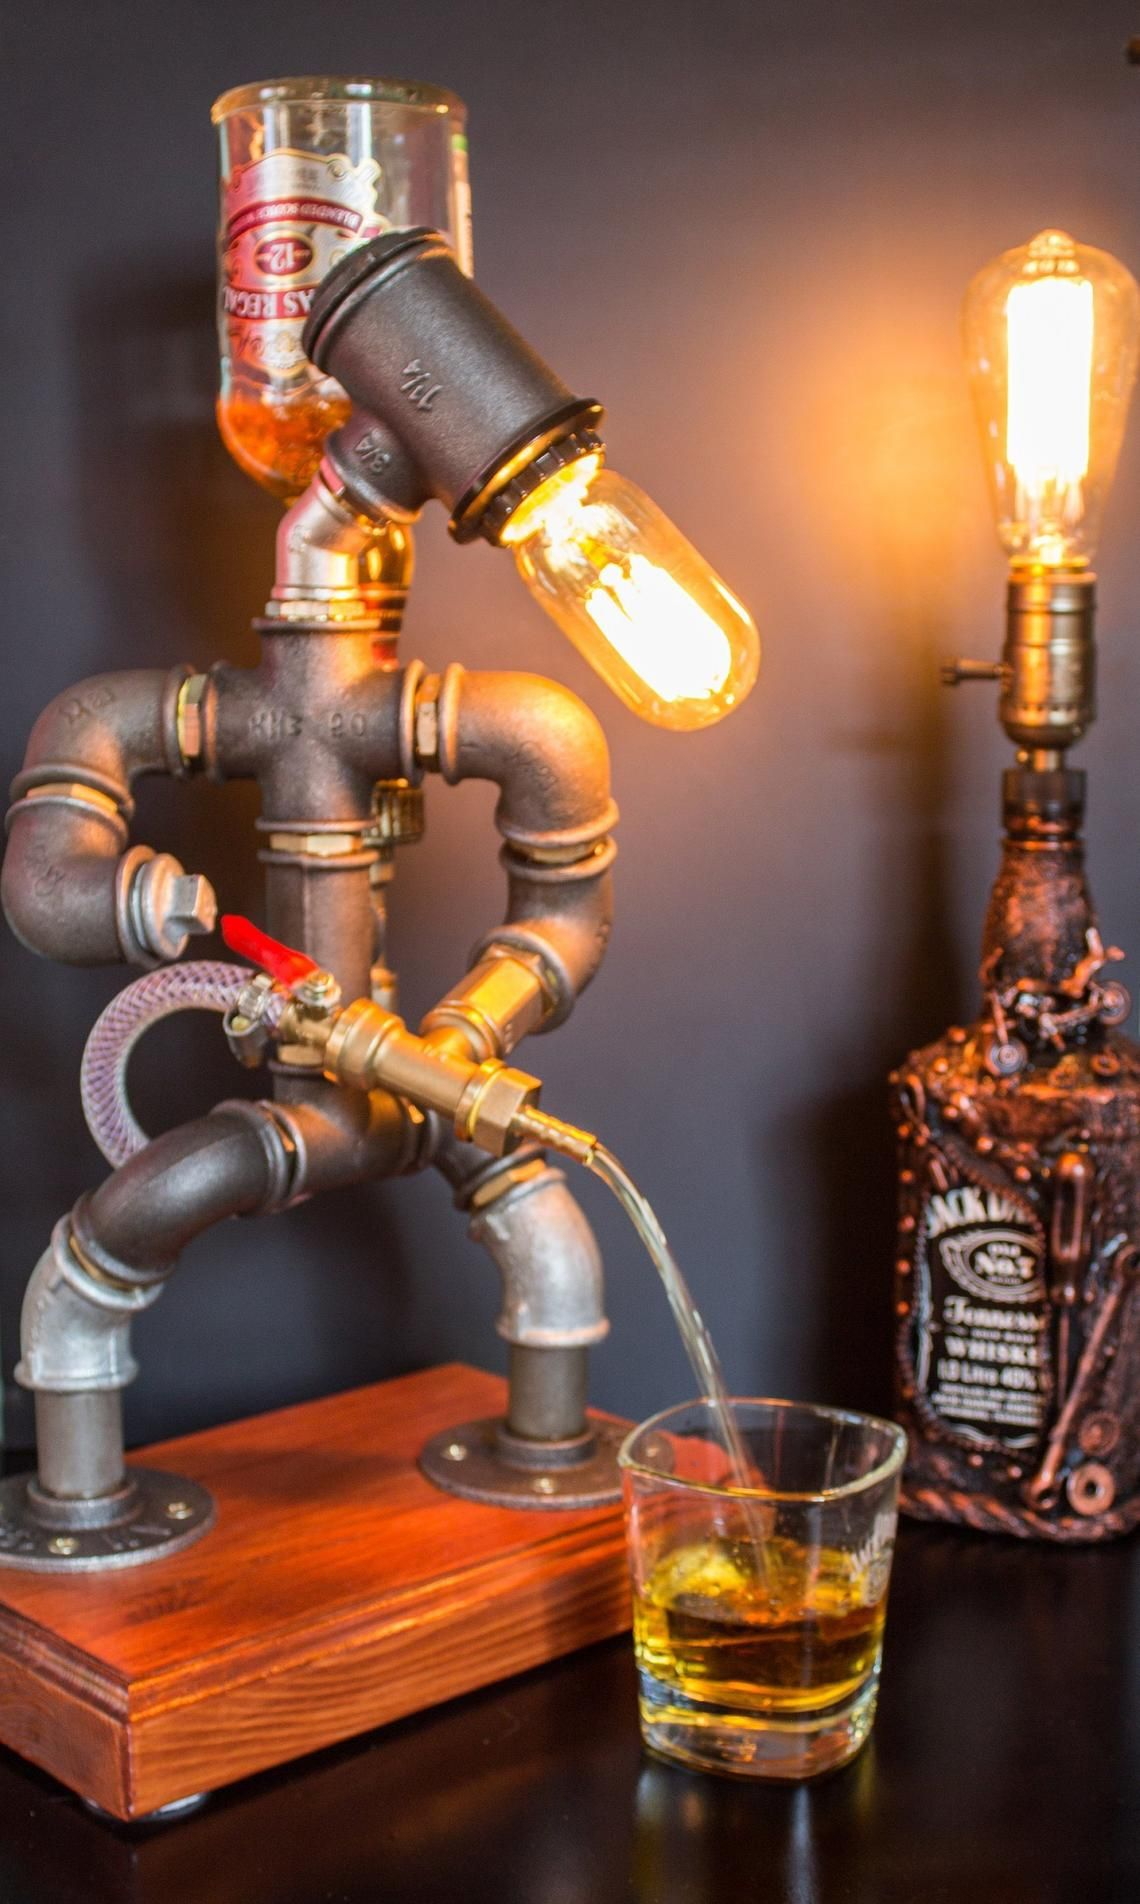 Pin by Wesley Bunch on Robot lamp | Industrial style lamps